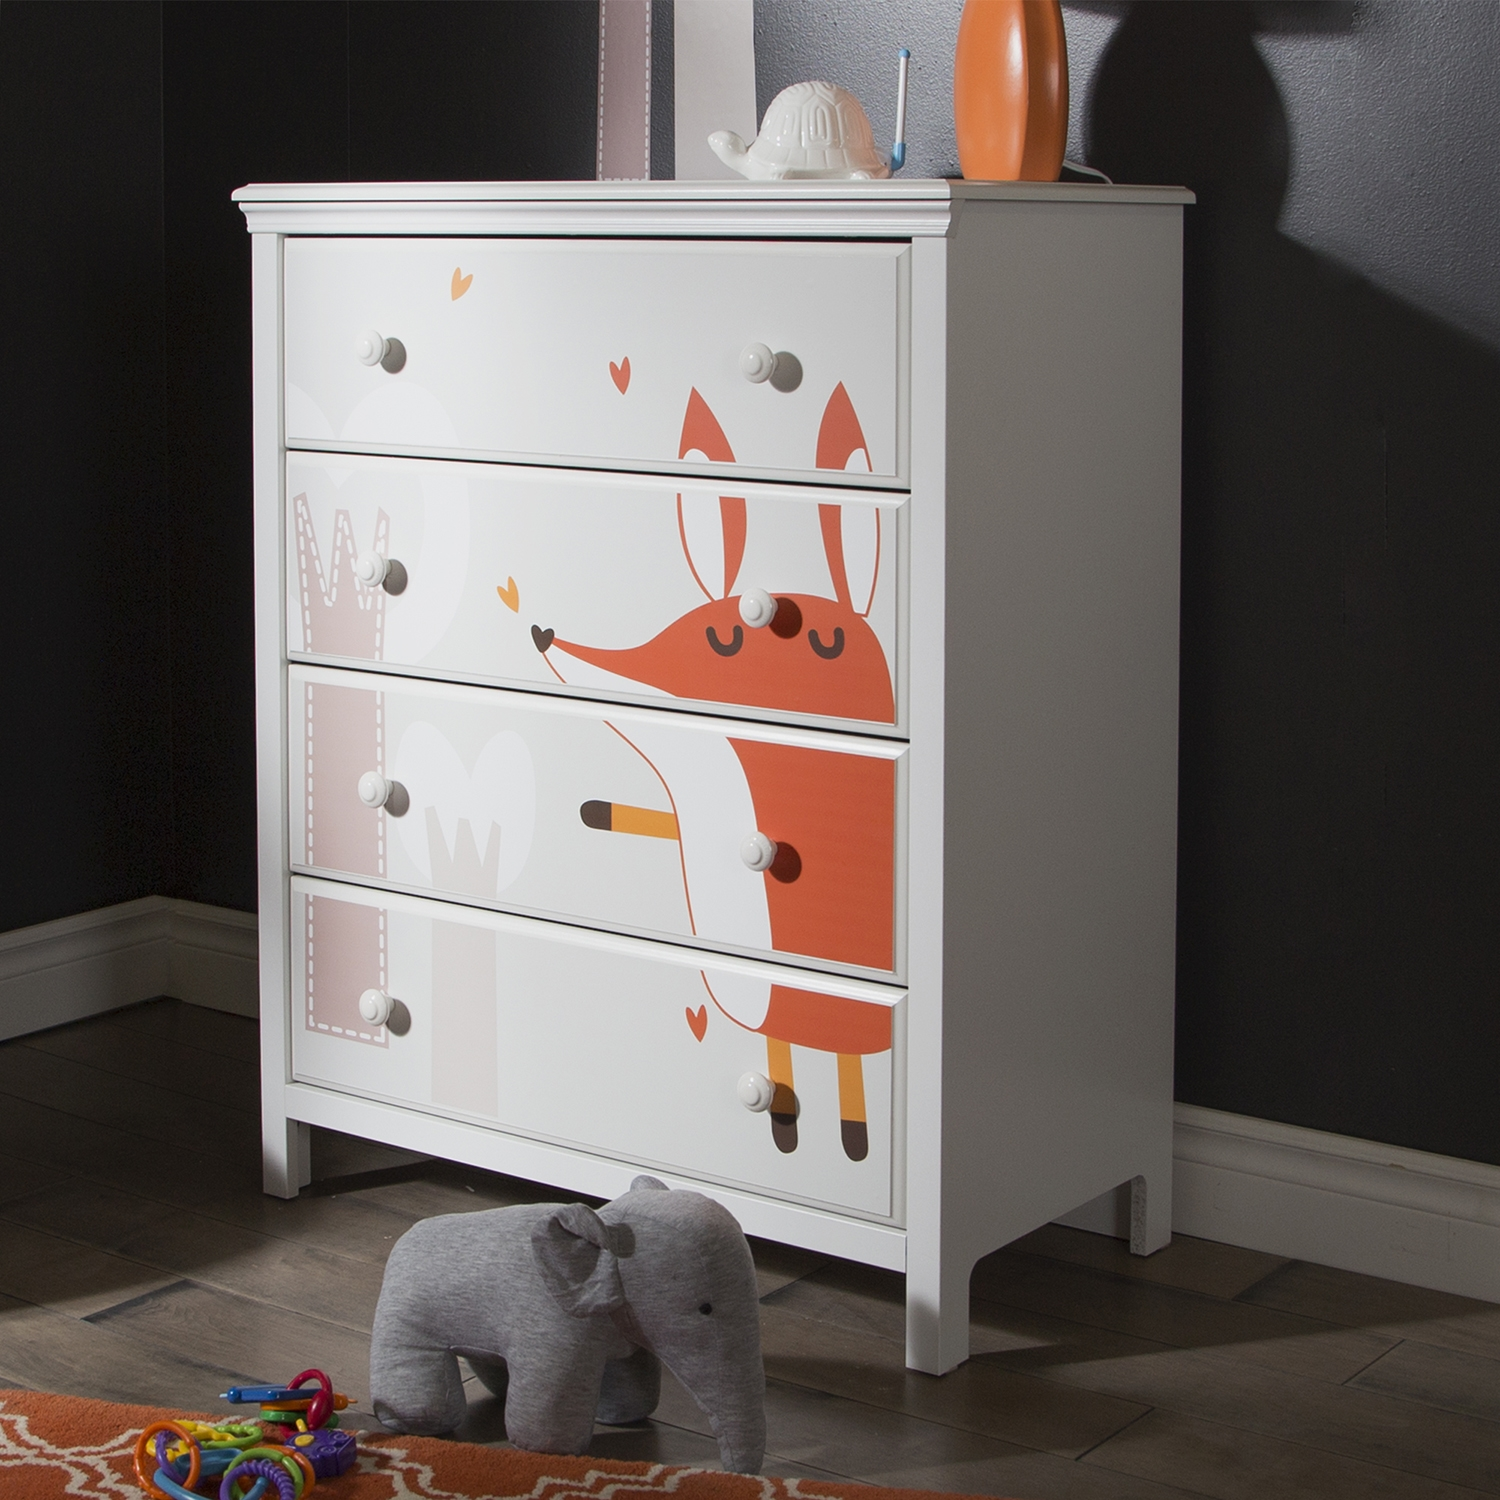 Cotton Candy Chest with Fox Decals - Pure White, 4 Drawers - SS-8050004K